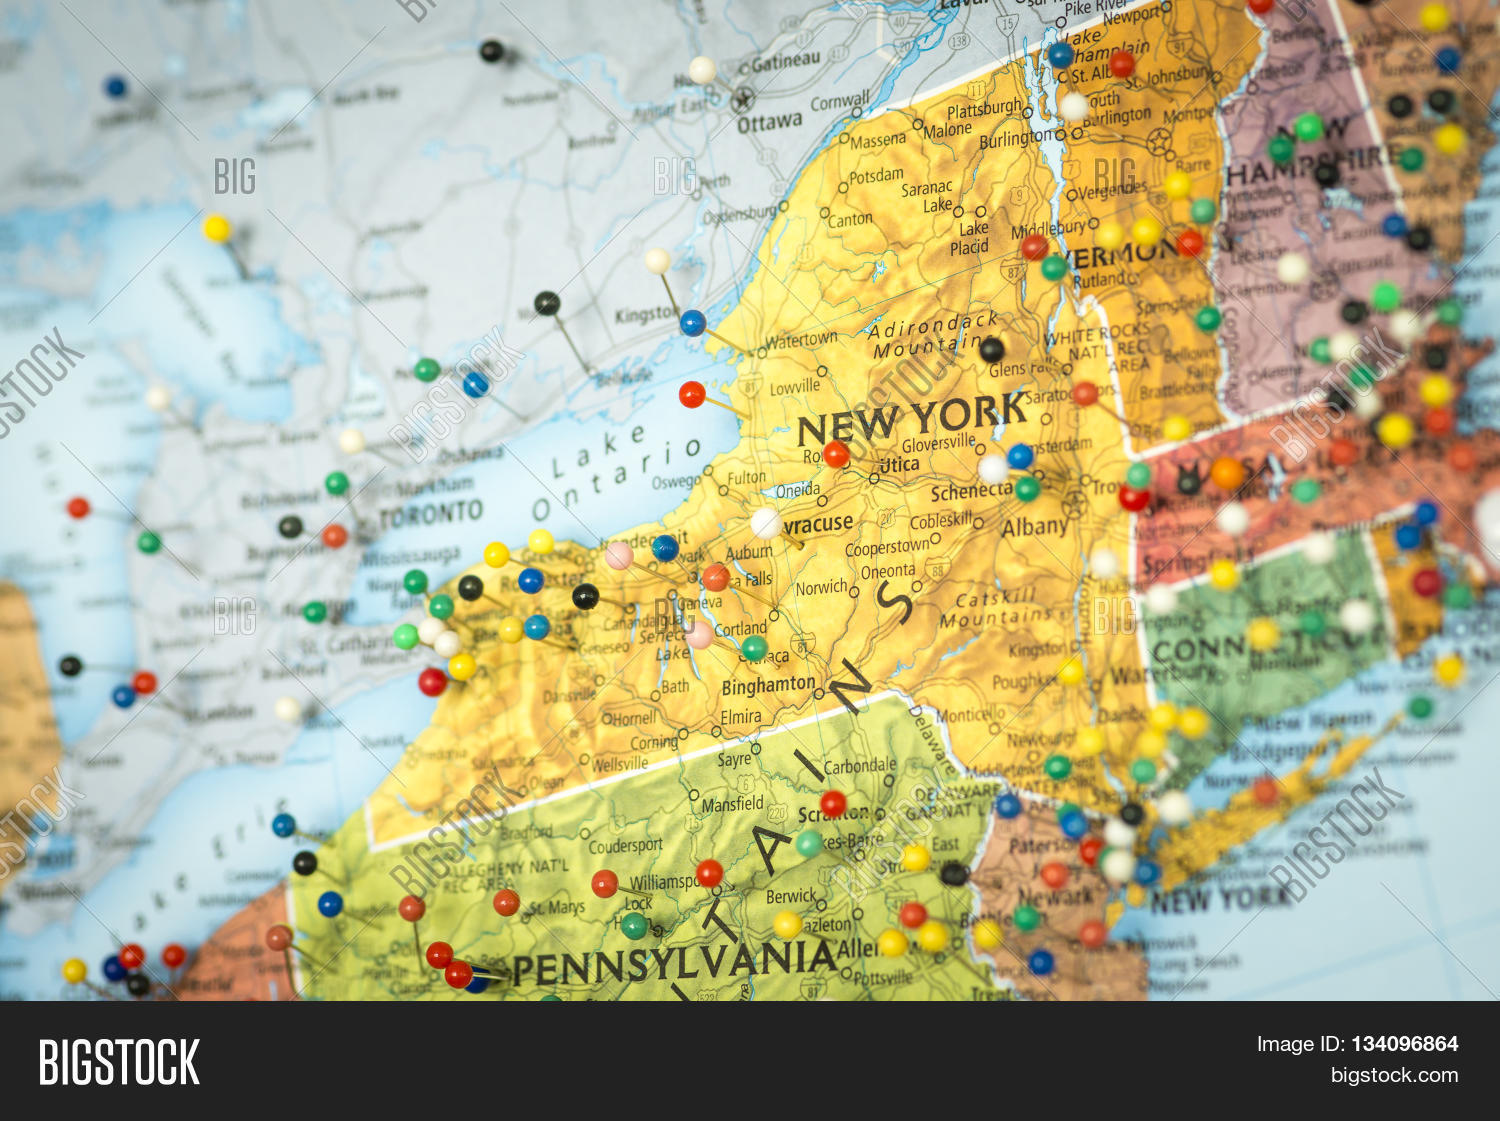 Colorful Detail Map Image Photo Free Trial Bigstock - Us-map-close-up